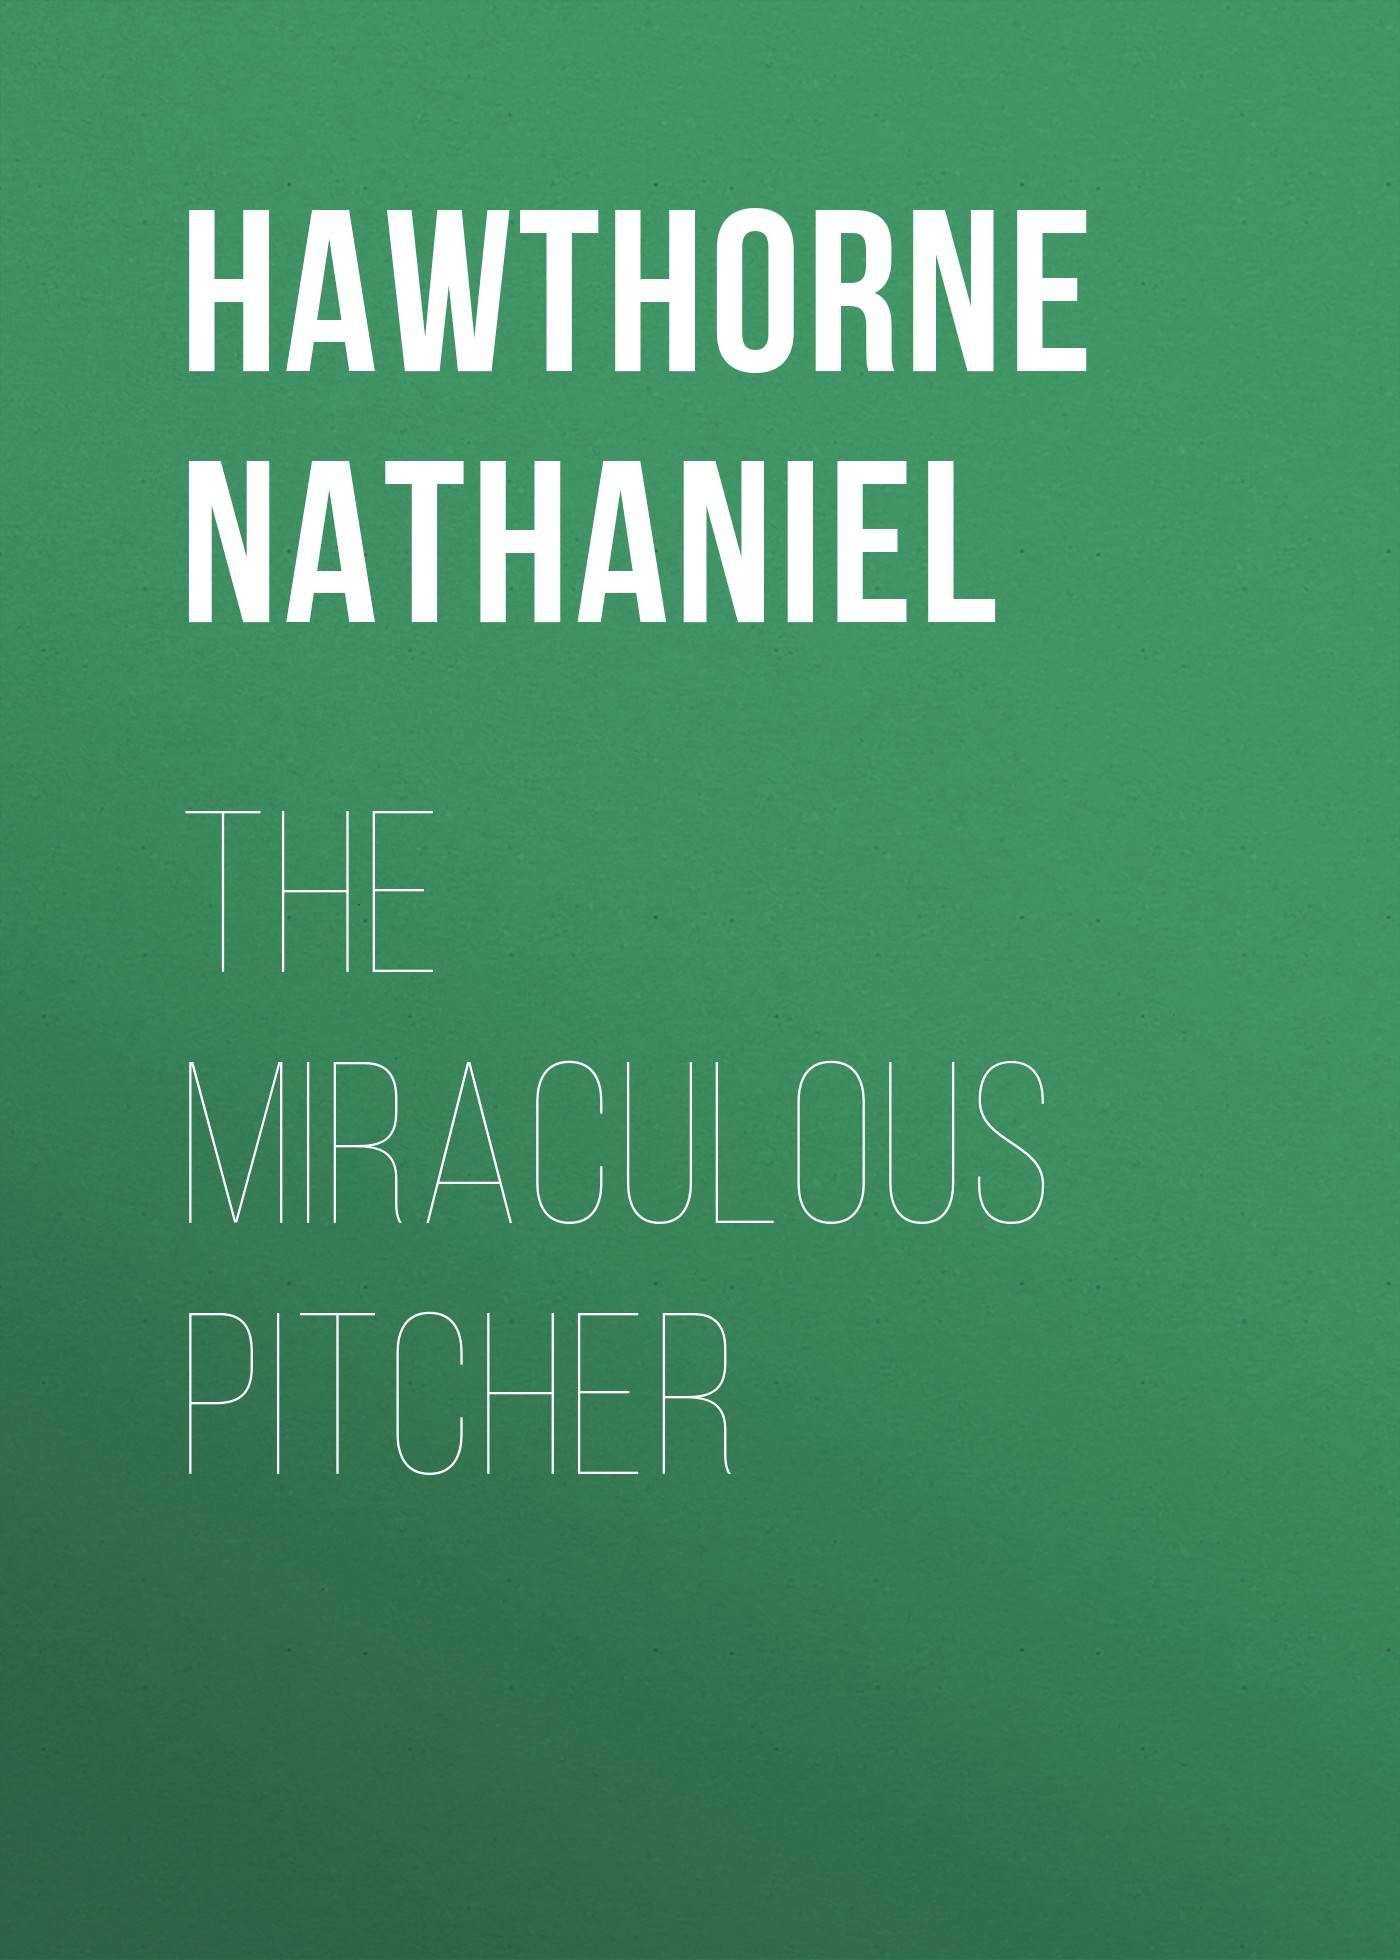 Hawthorne Nathaniel The Miraculous Pitcher west virginia mountaineers pitcher